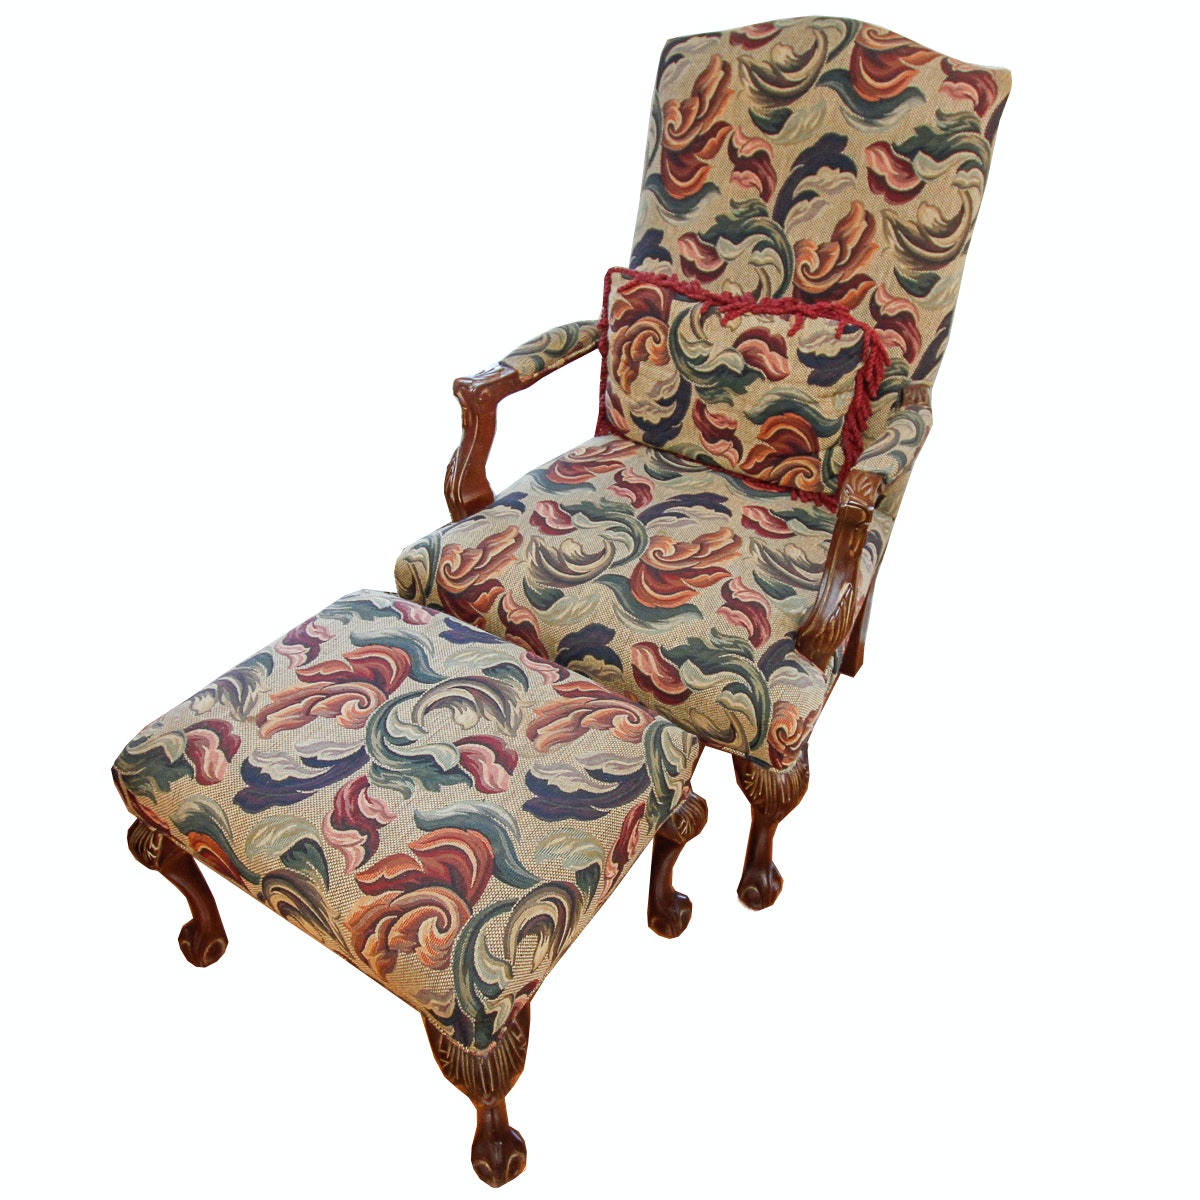 Vintage Queen Anne Style Upholstered Armchair with Ottoman